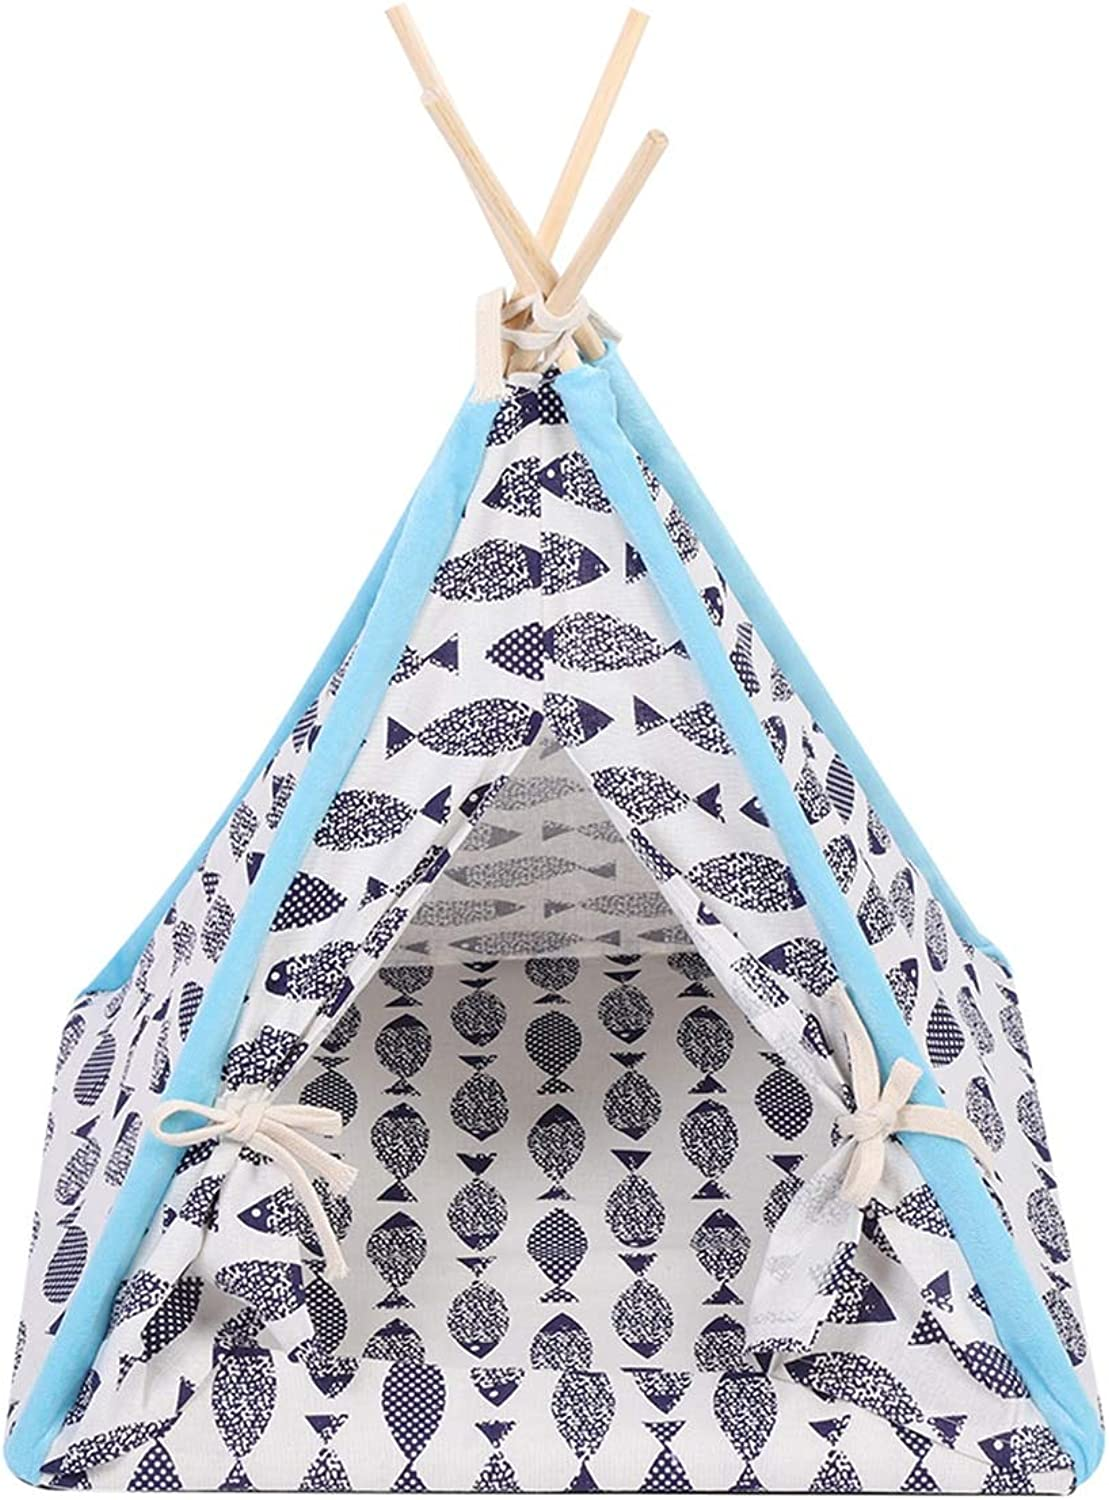 CARBE kennelFoldable Linen Pet Dog House Kennels Washable Tent Puppy Indoor Outdoor Portable Teepee Mat Dog Supplies Gifts L A